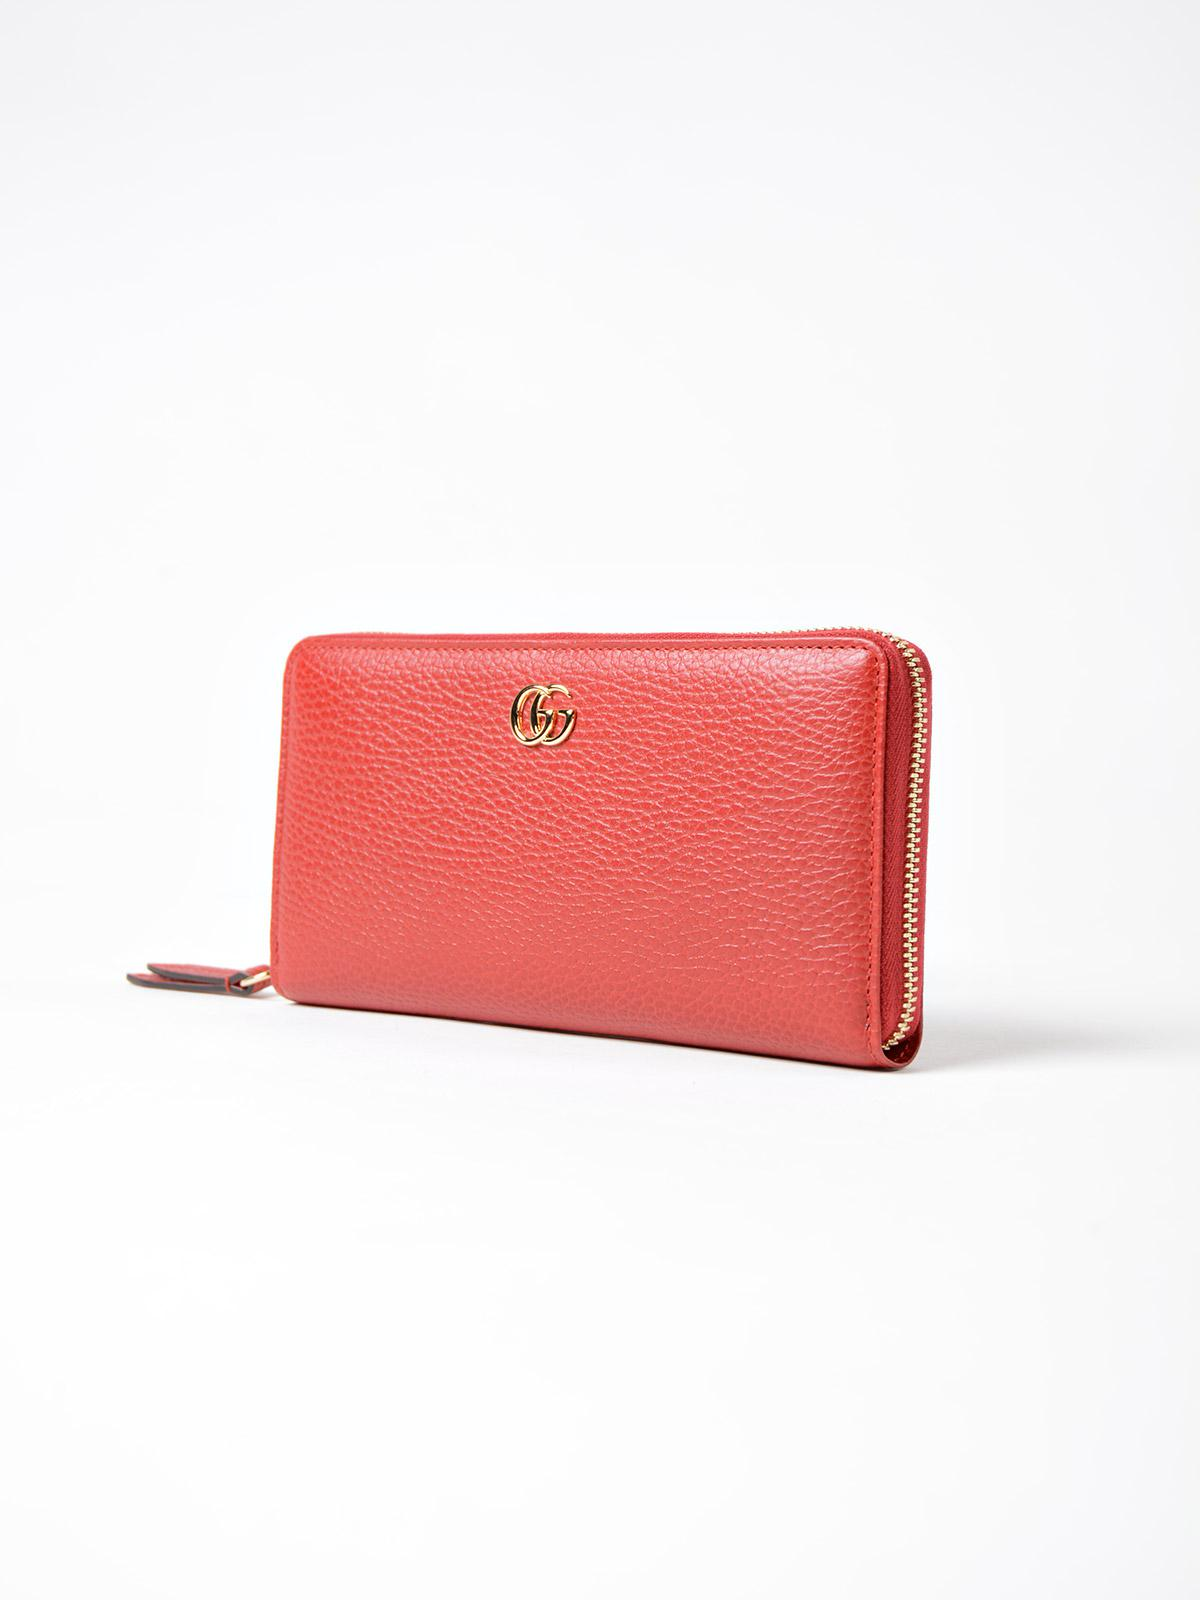 553c824e053 Lyst - Gucci Gg Marmont Zip Around Wallet in Red